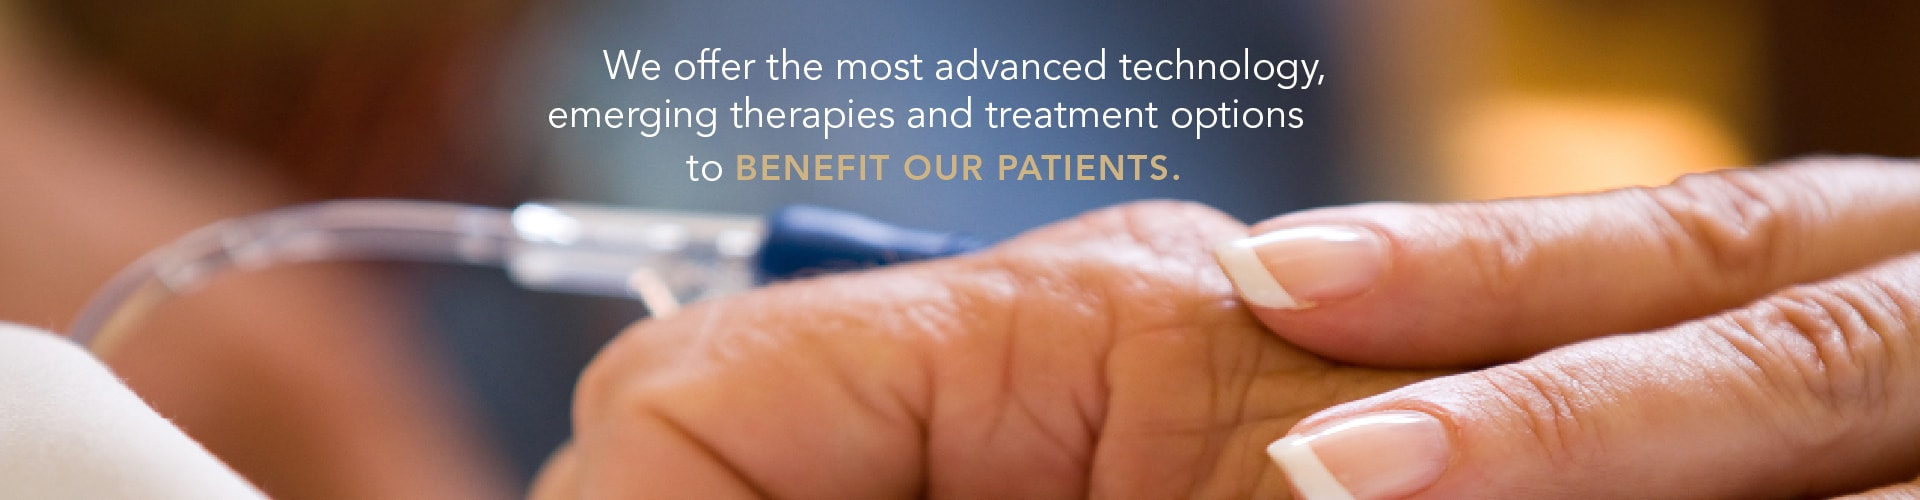 Georgetown Cancer Center Cancer Treatments